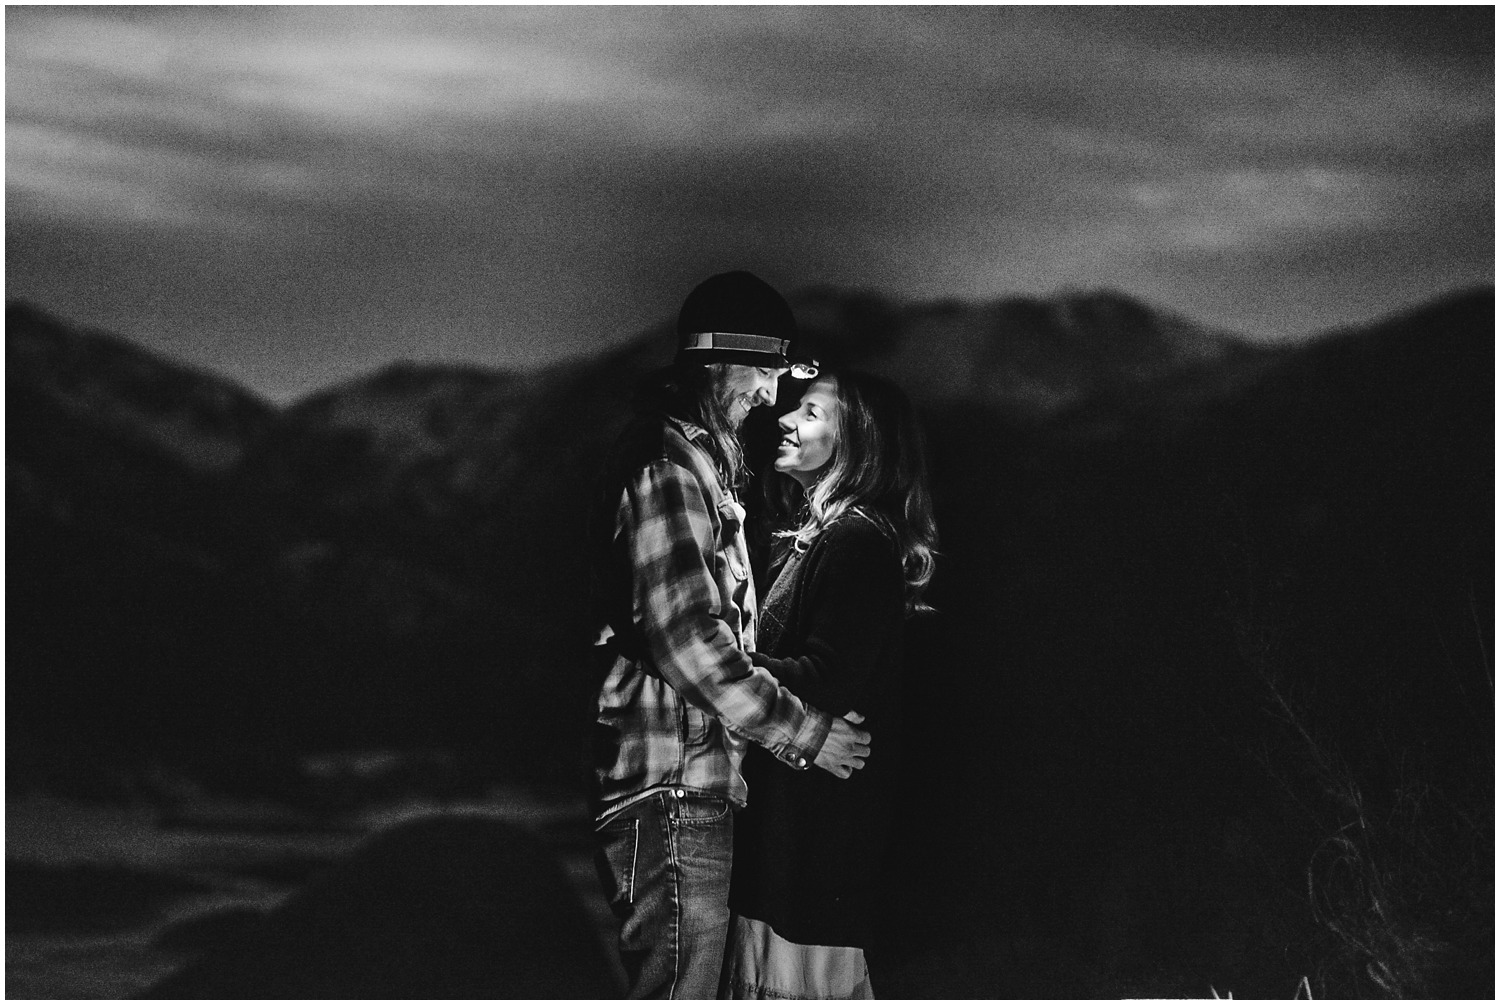 Night engagement photo with headlamps